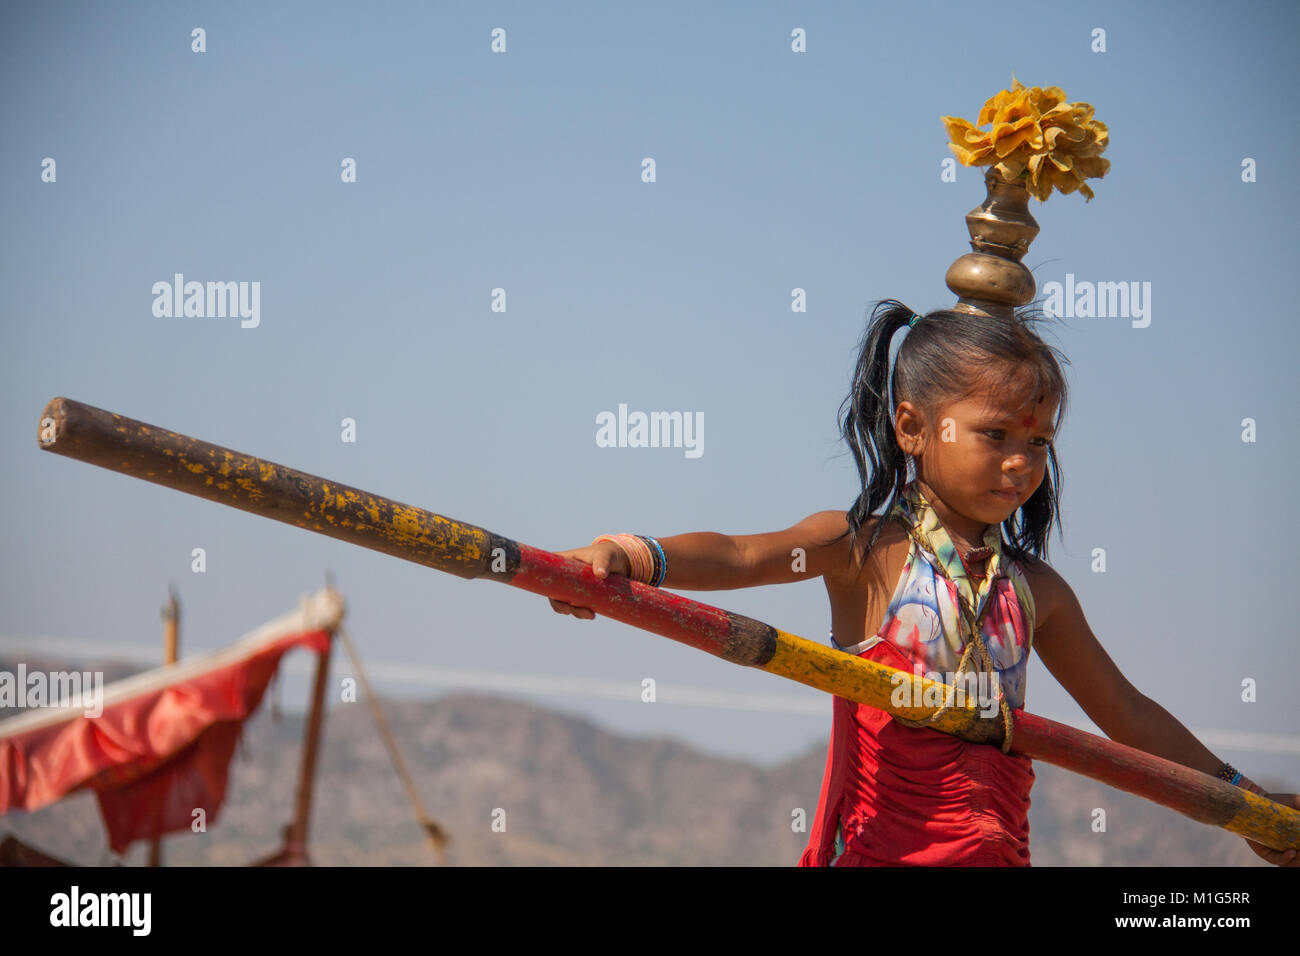 Young girl walking a tight-rope to entertain tourists at the Pushkar Camel Fair, Rajasthan, India - Stock Image